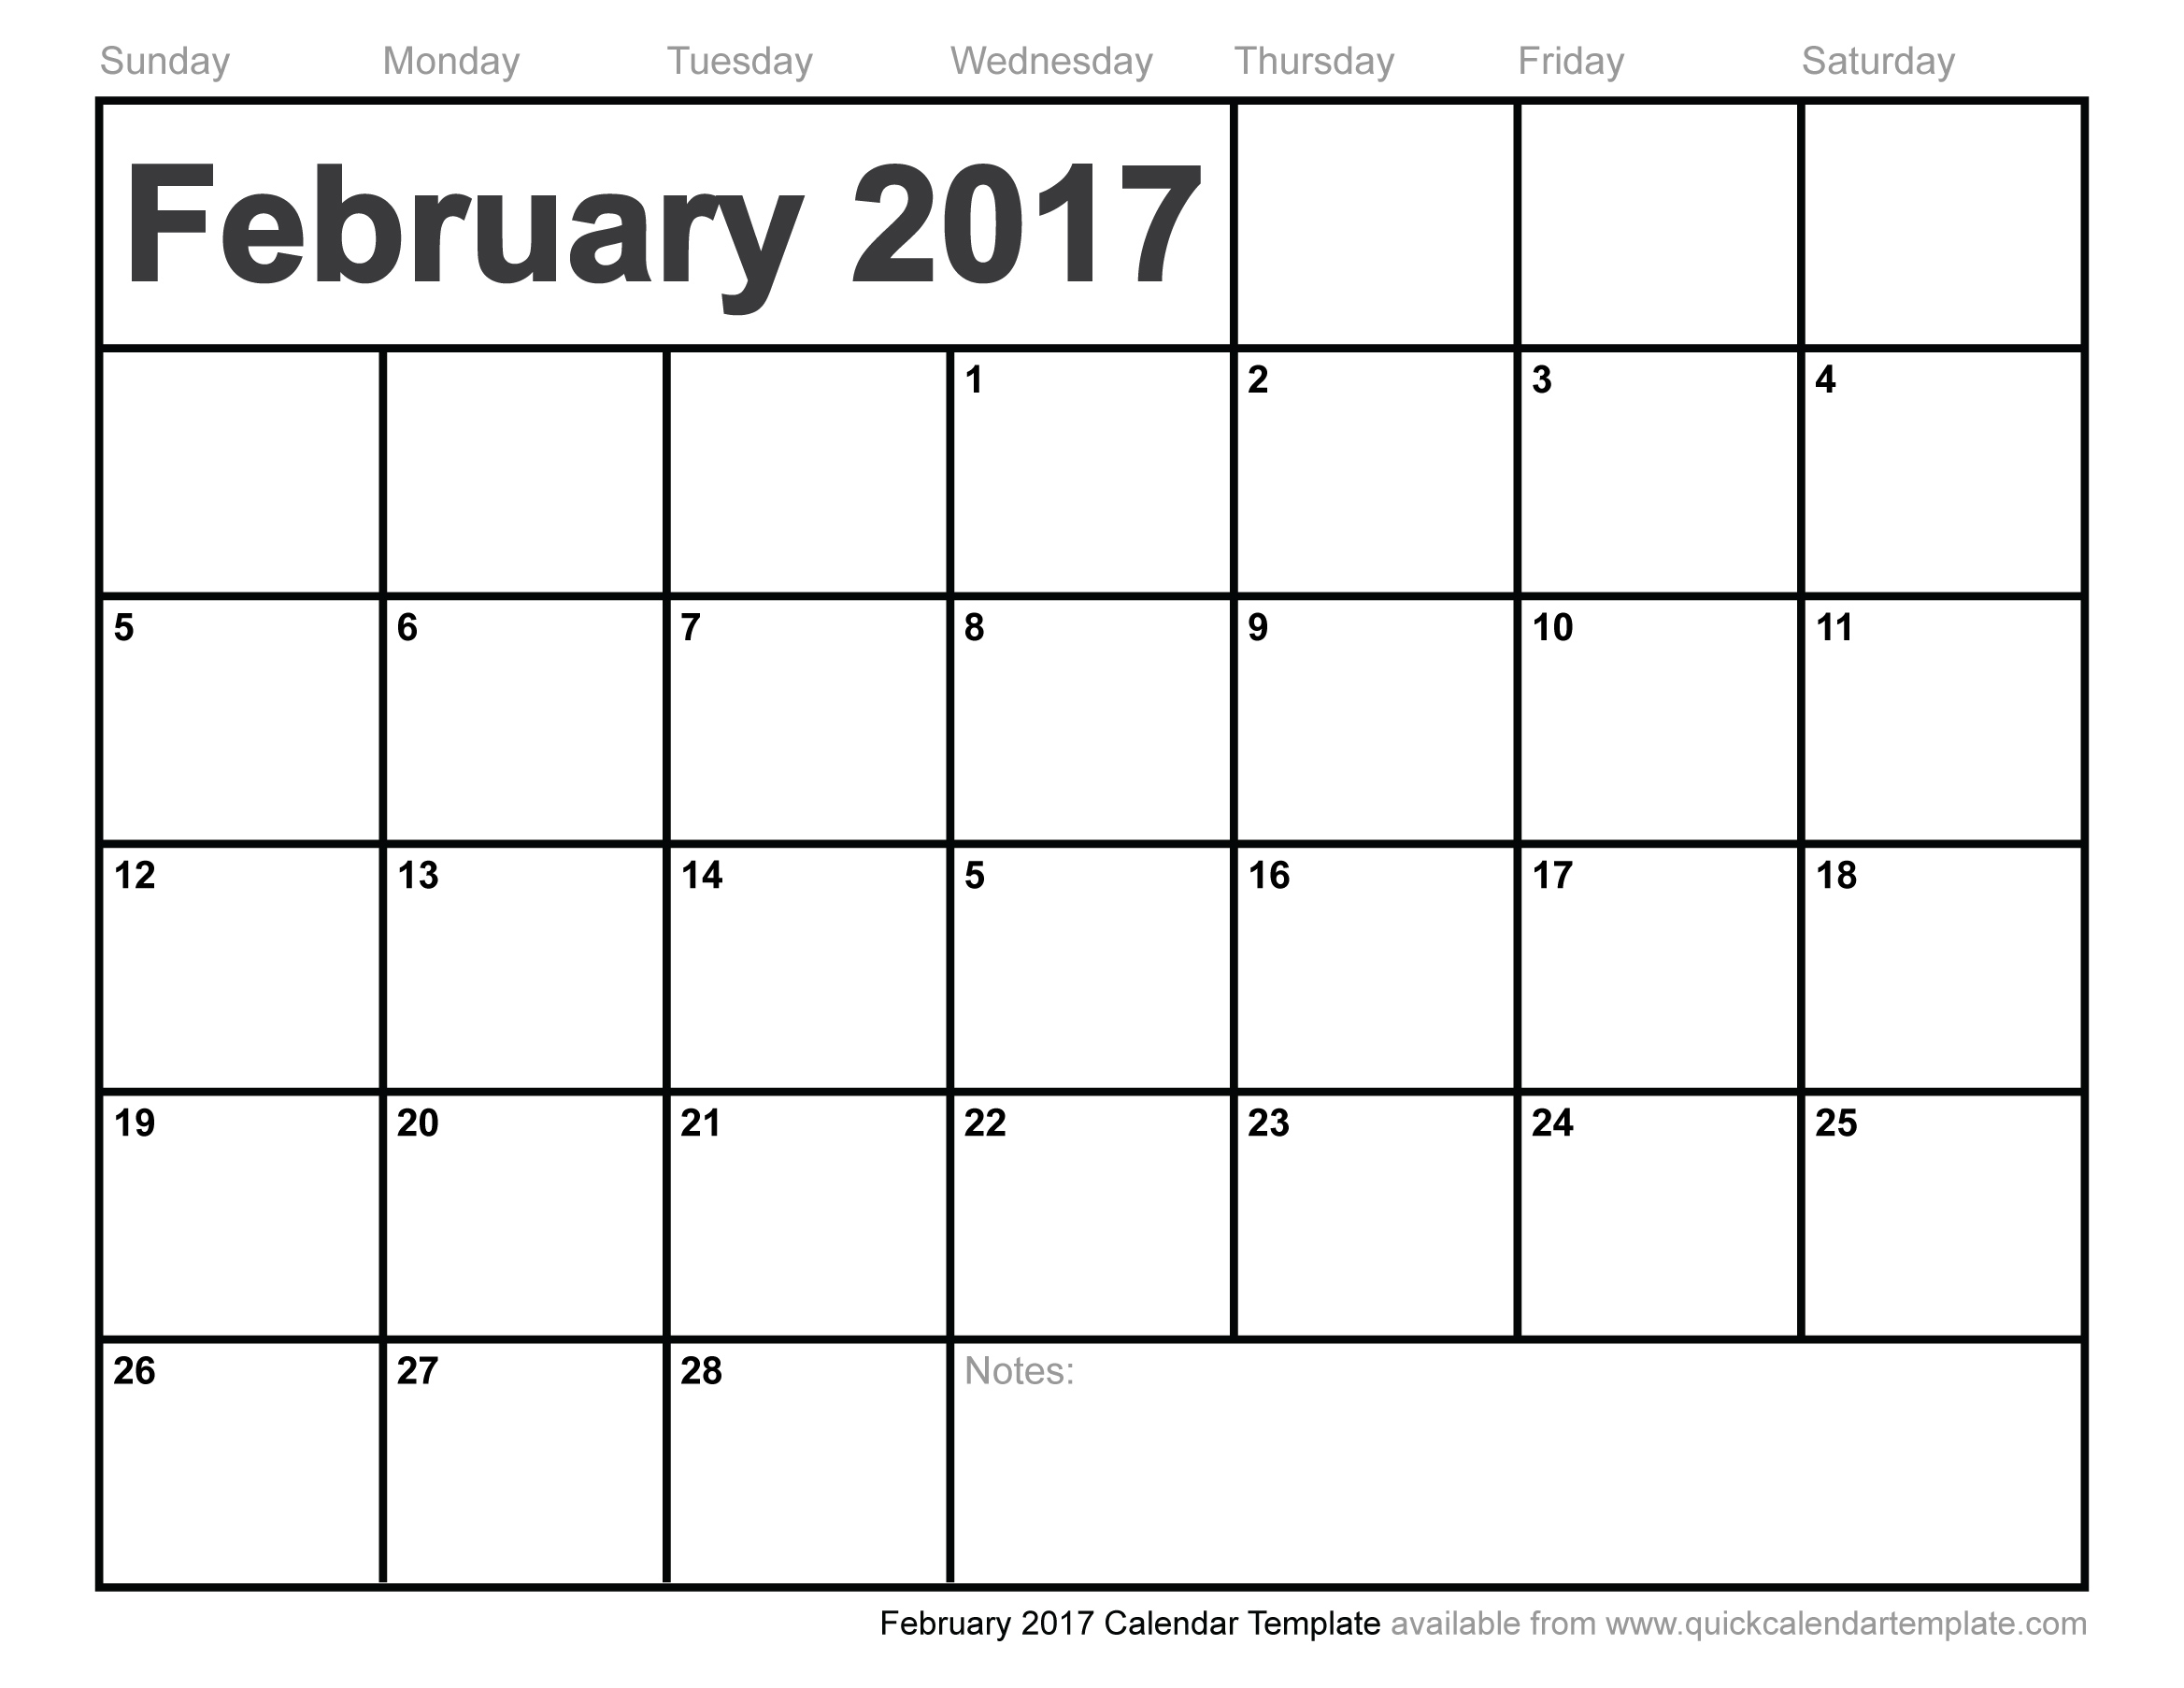 February 2017 Calendar You Can Type On